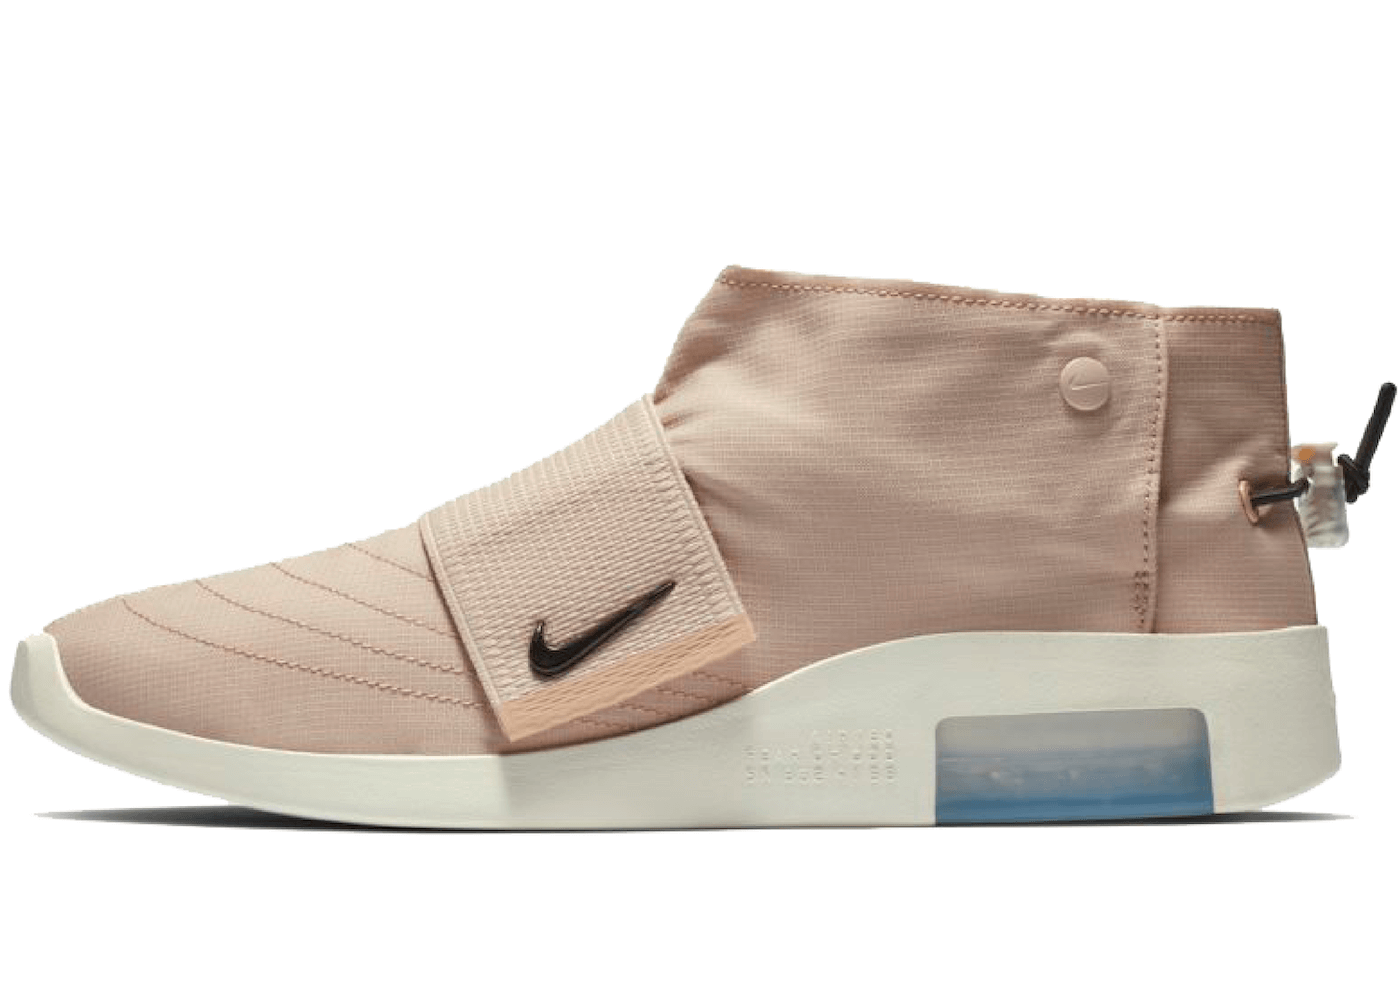 Nike Air Fear Of God Moccasin Particle Beigeの写真